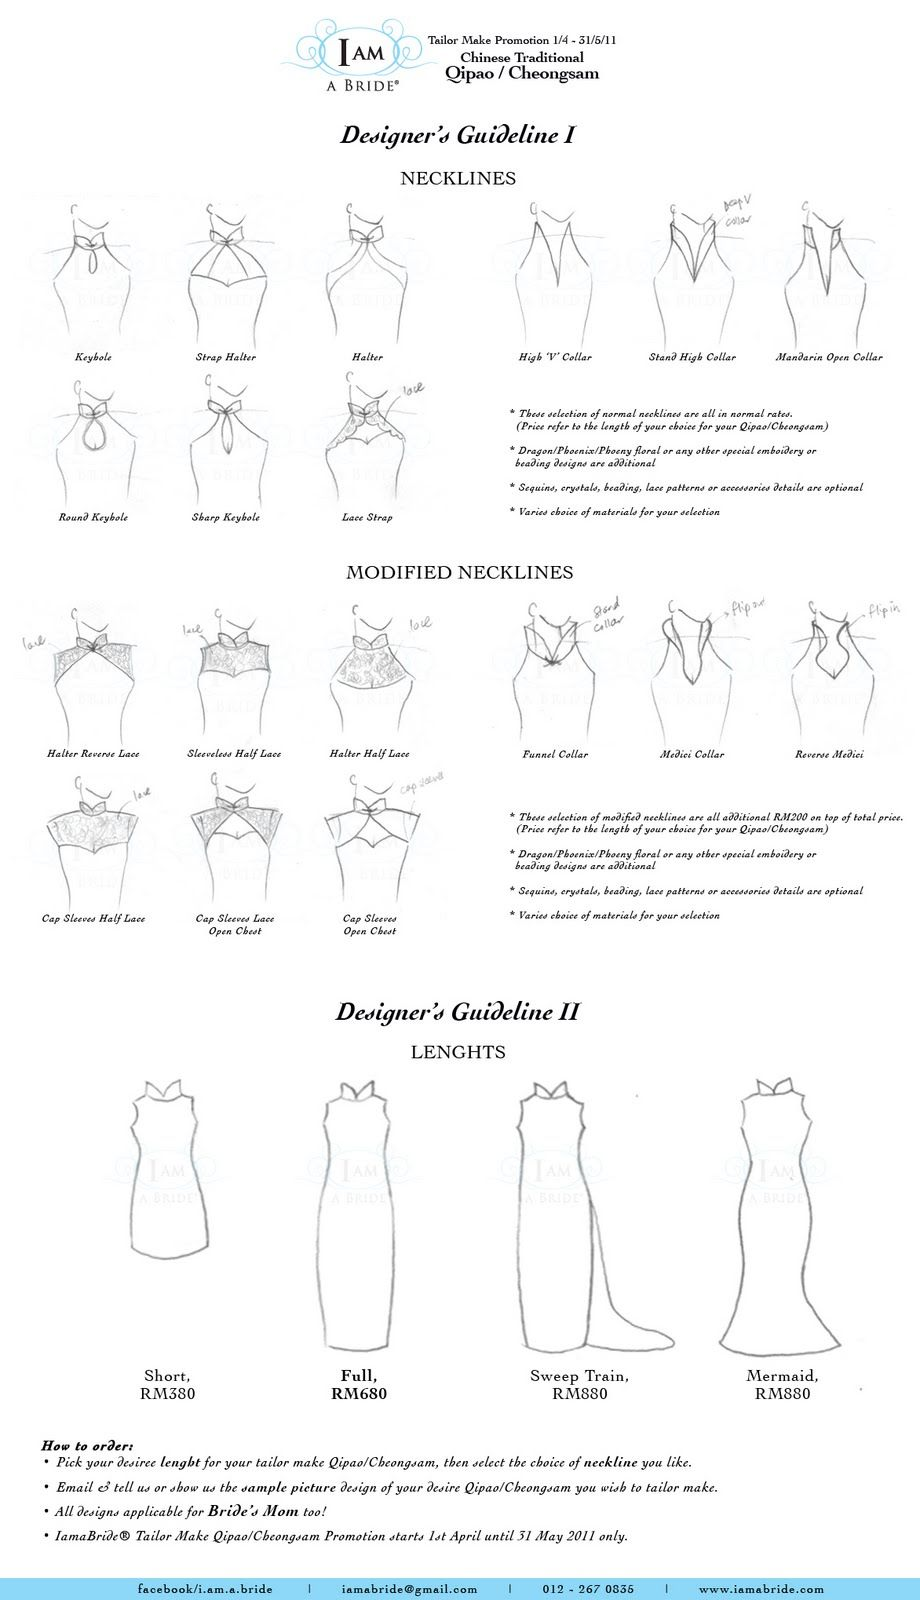 I+am+a+Bride+Qipao+cheongsam+collar+design+guide+-+high+collar%2C+ ...